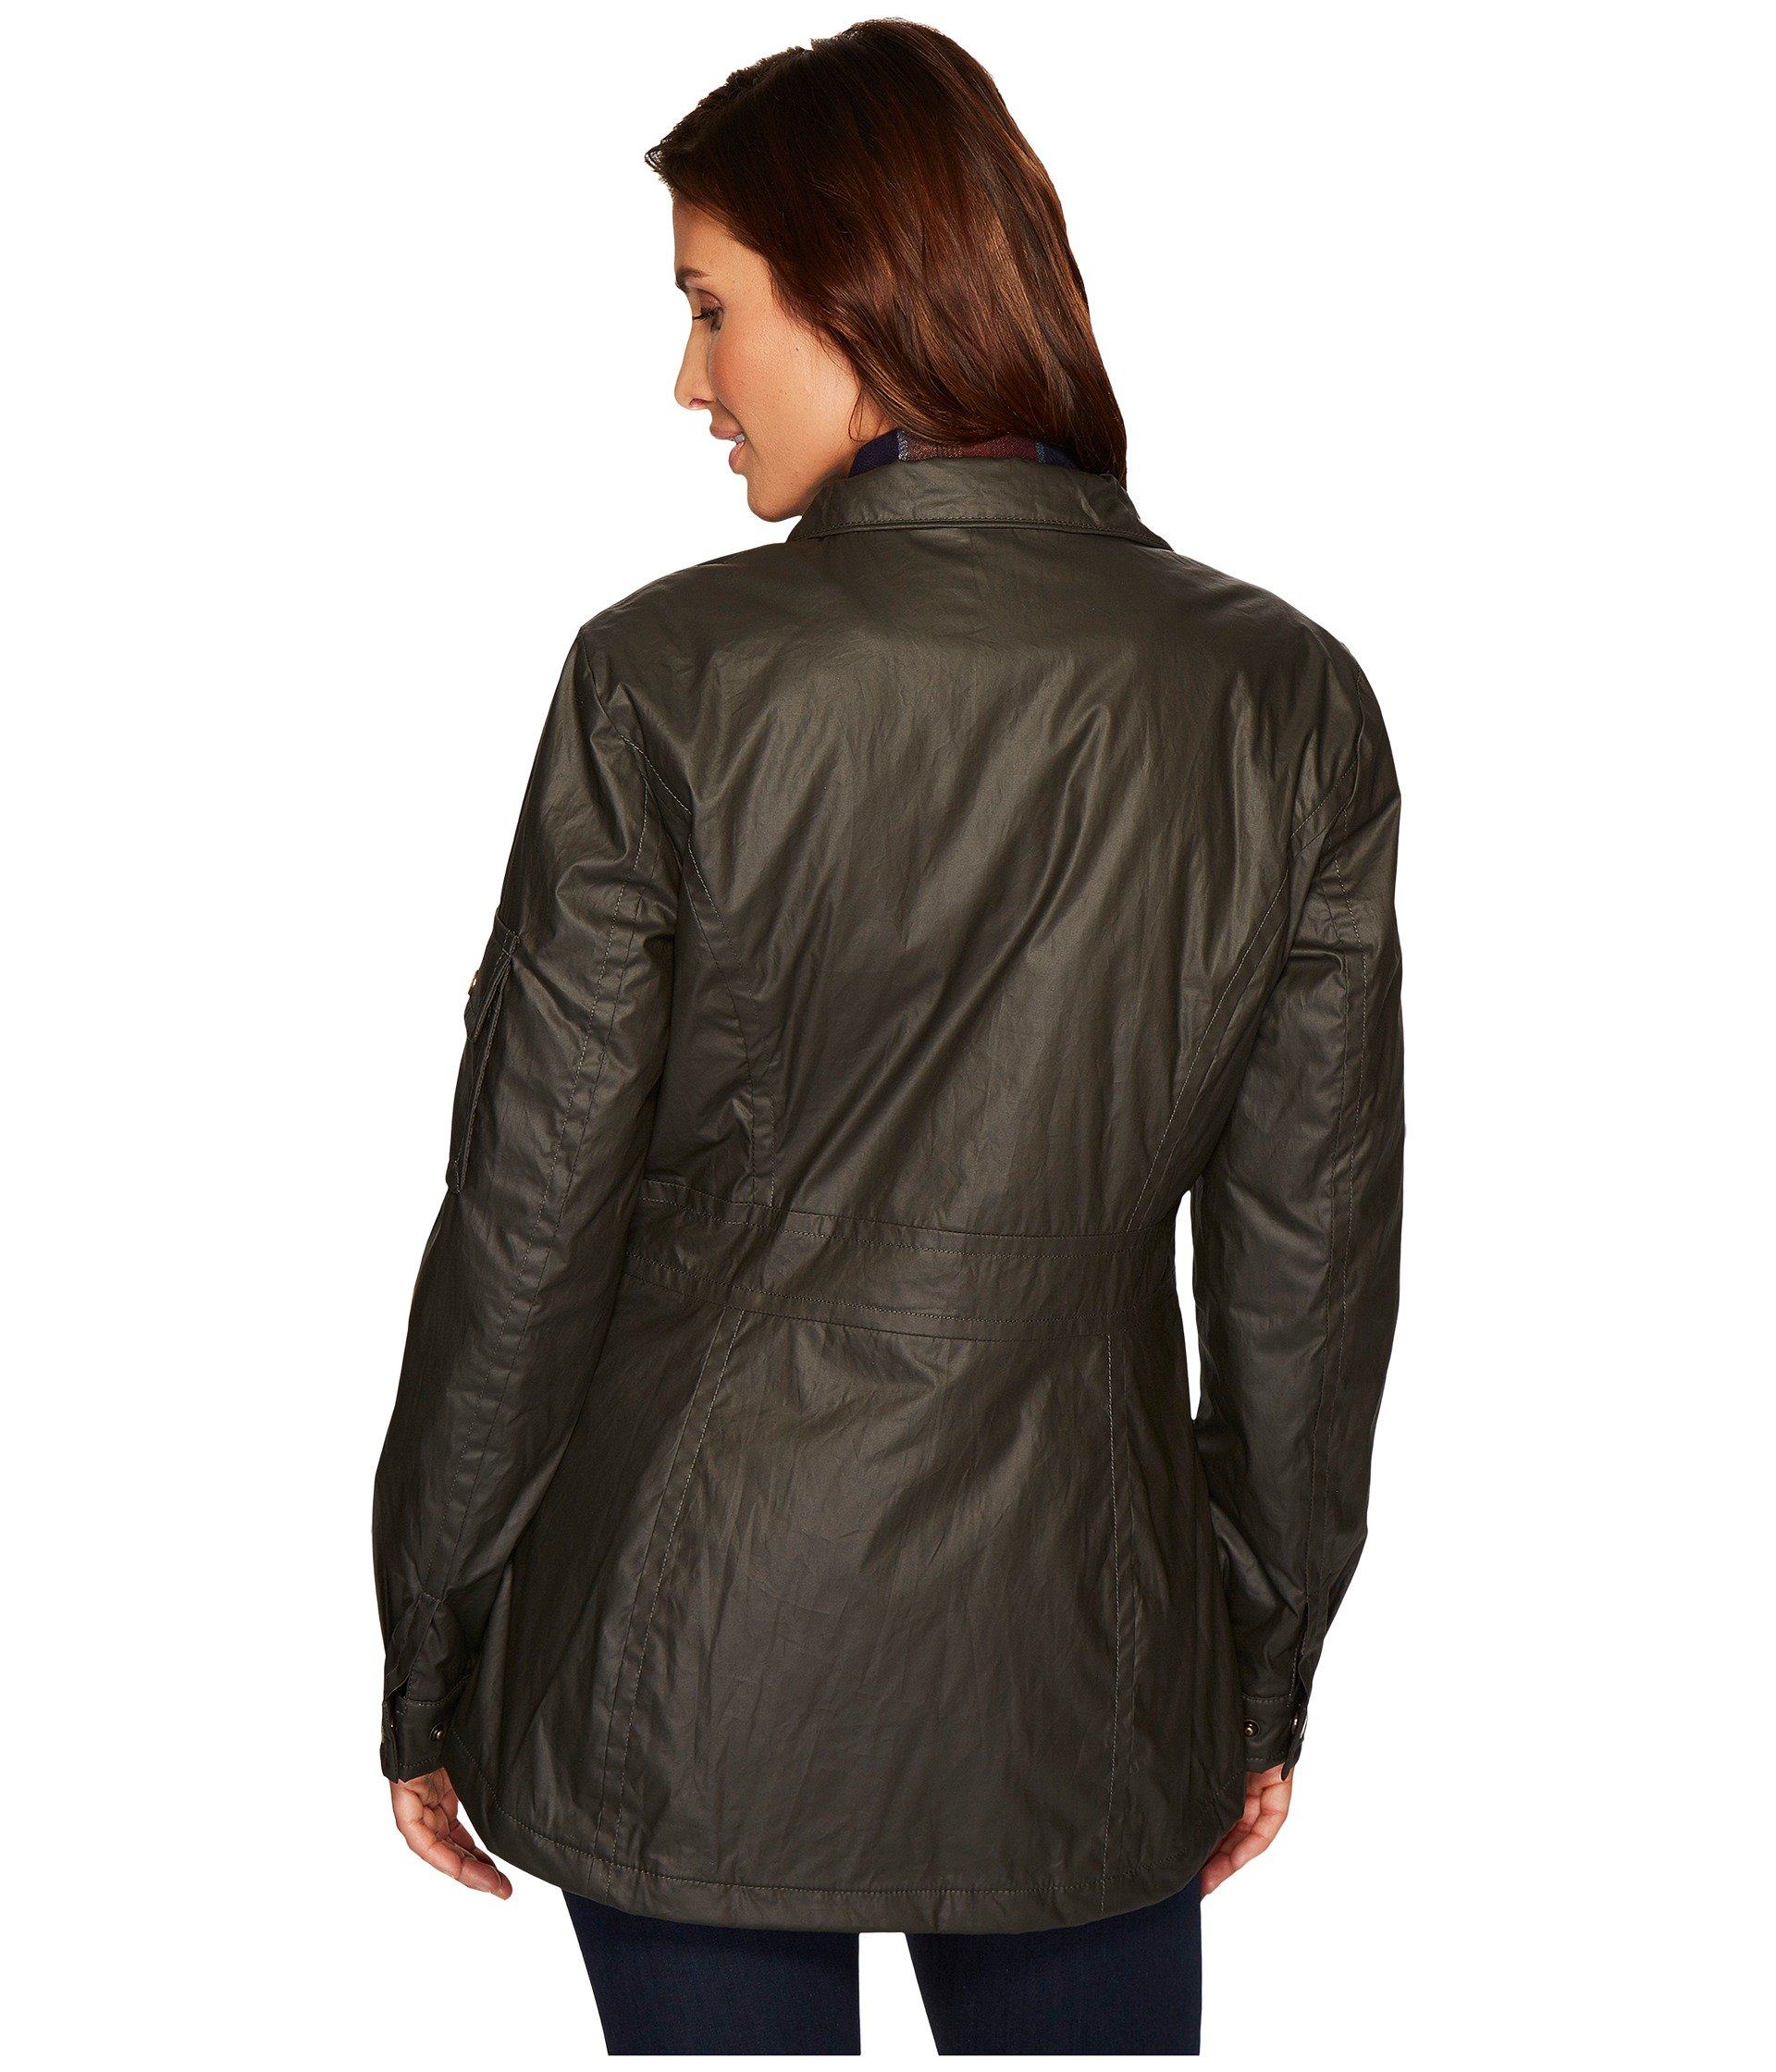 Pendleton Women's Waxed Cotton Hooded Zip Front Jacket, Olive, M by Pendleton (Image #6)